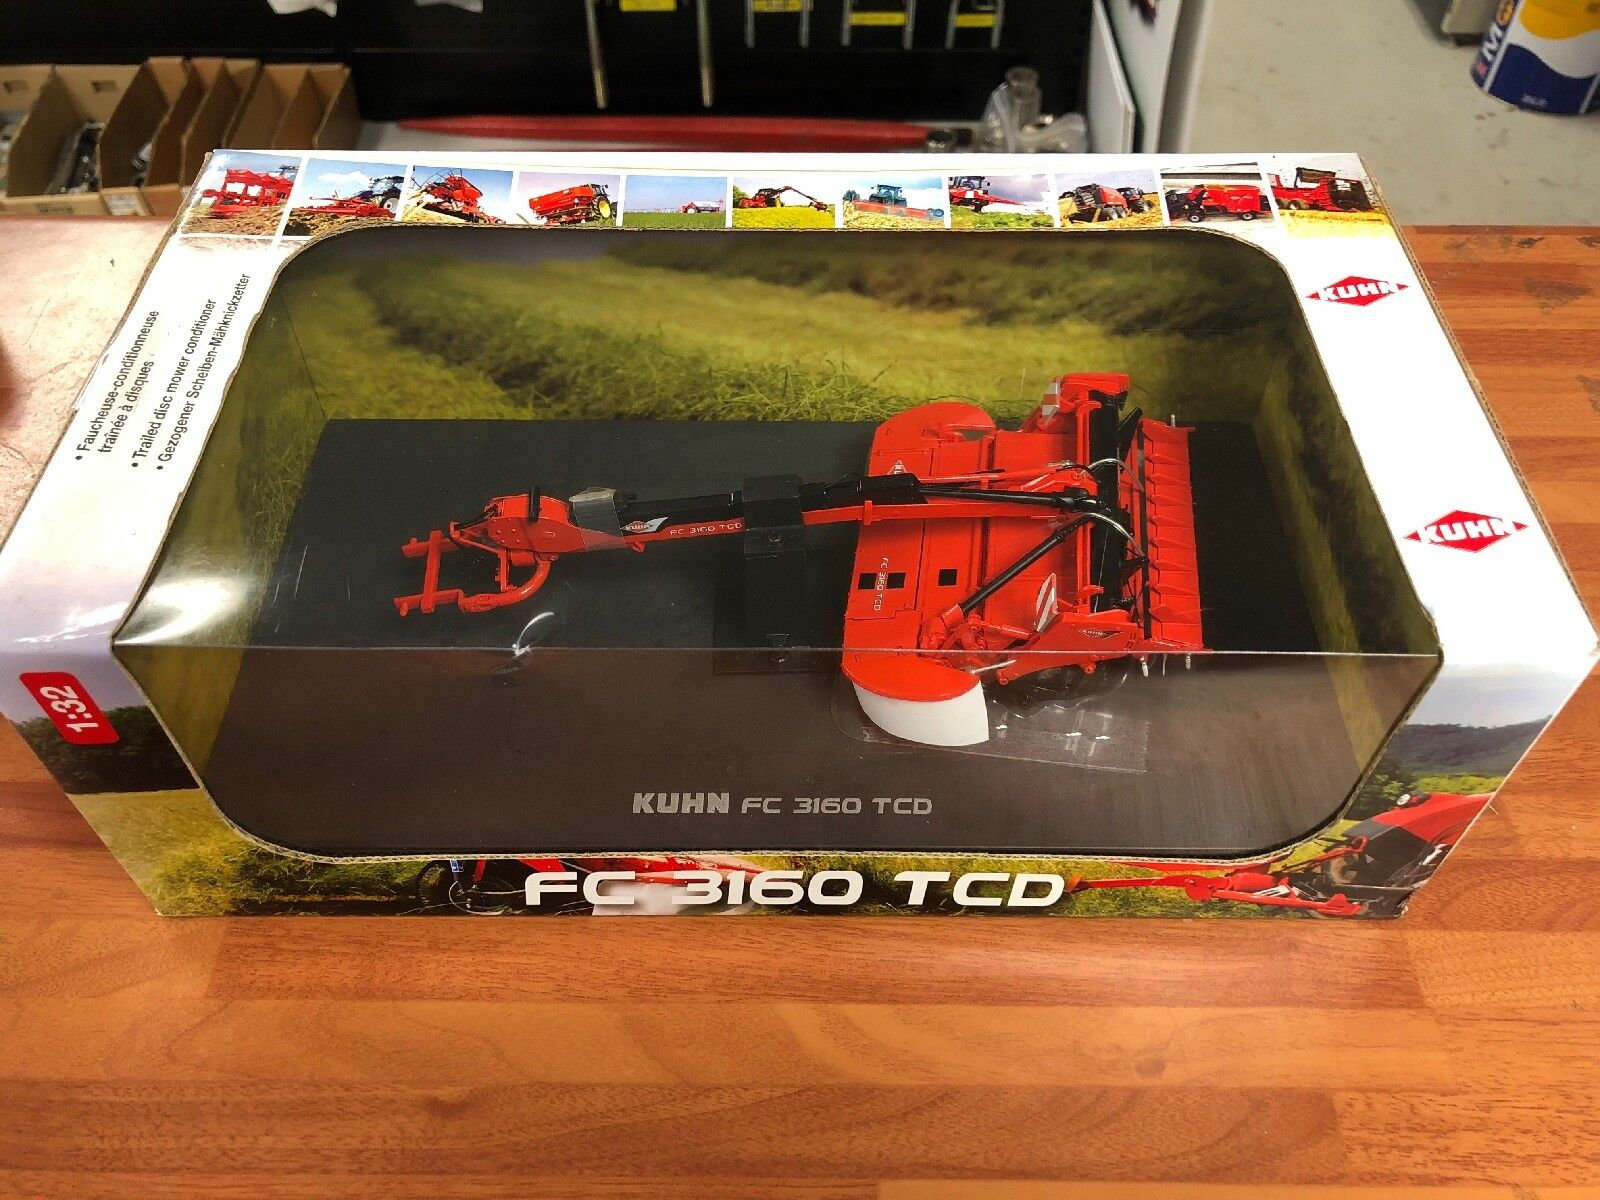 Kuhn FC3160 TCD Trailed Disc Mower Conditioner Universal Hobbies Scale 1 32 CG